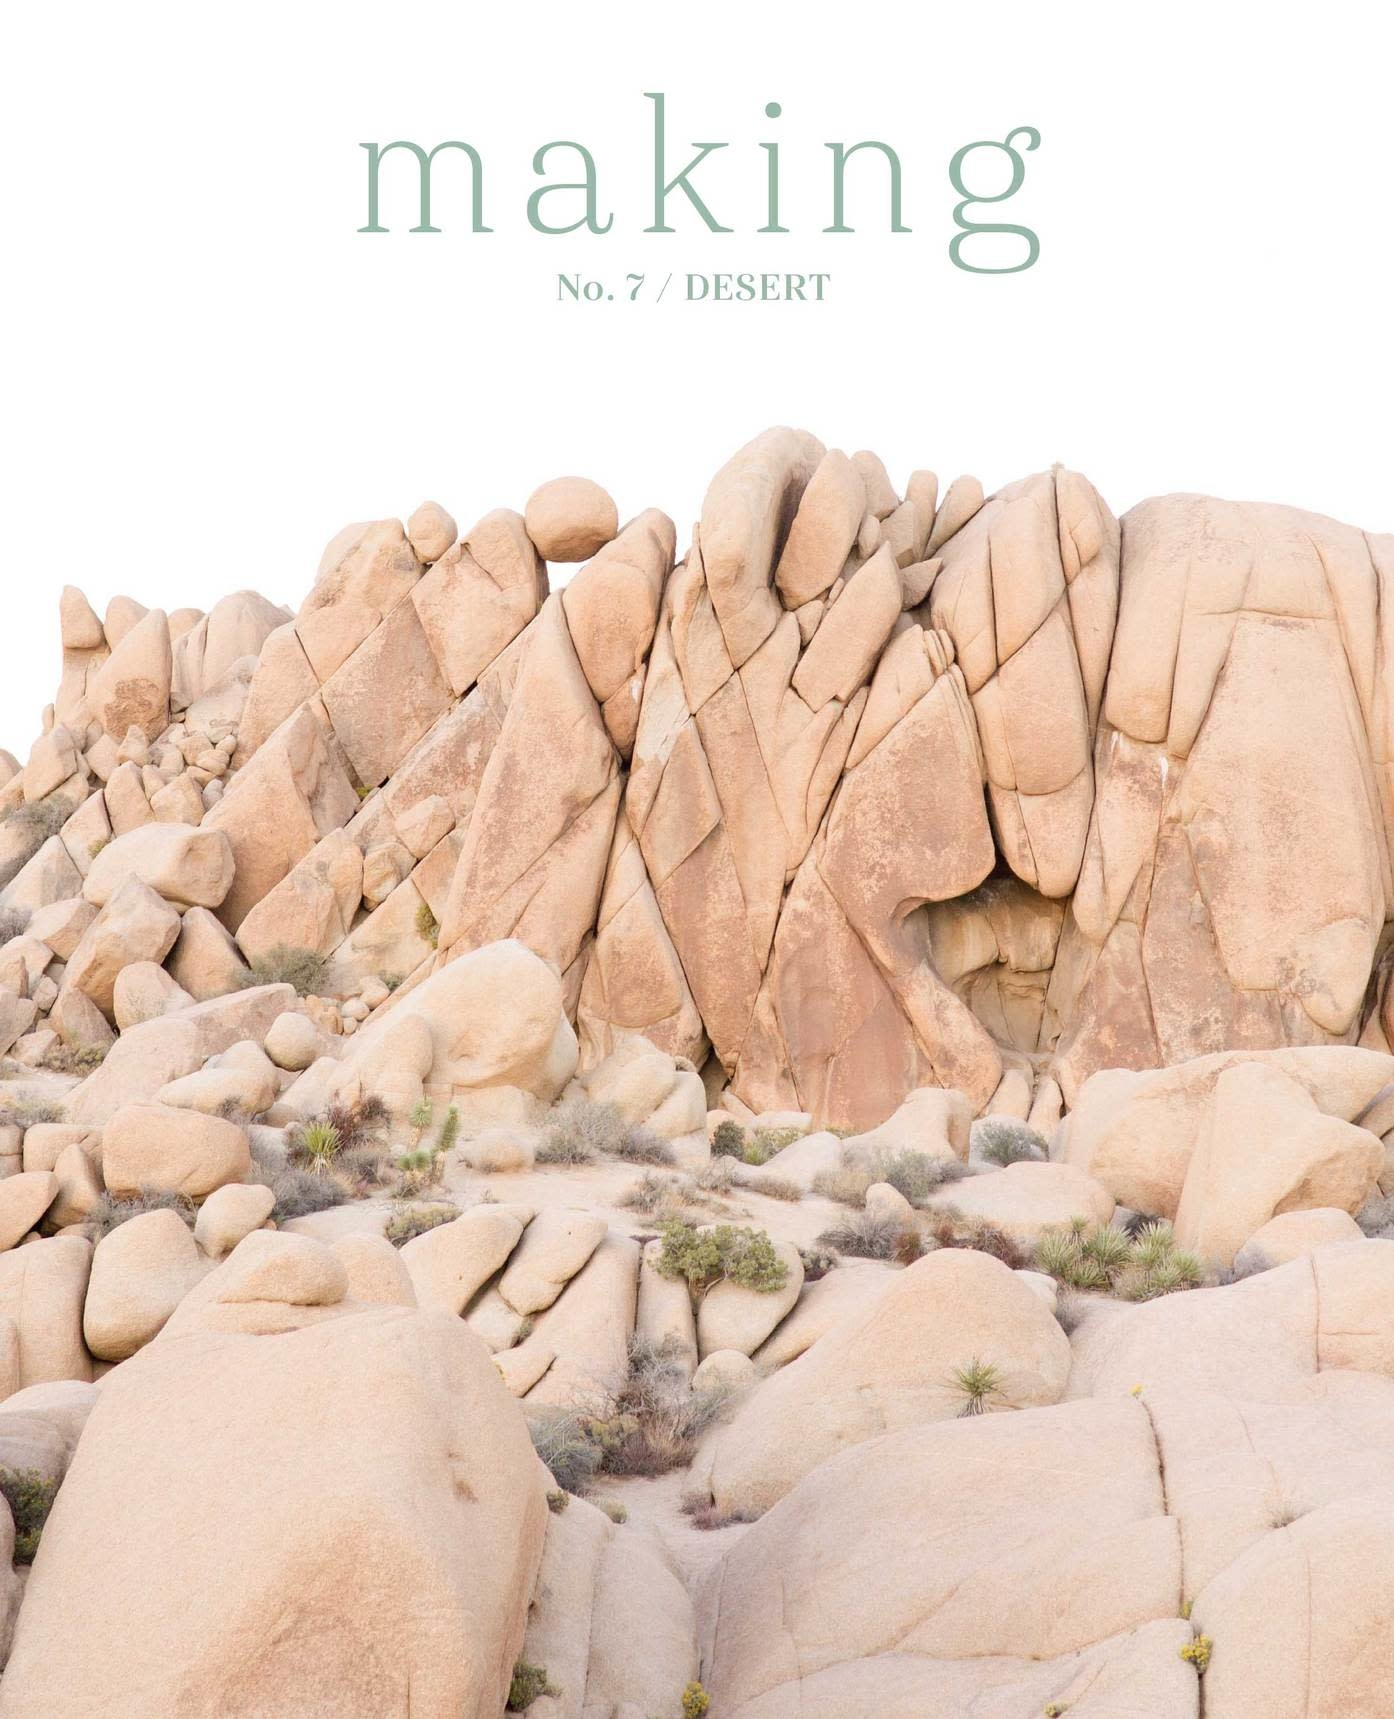 Making Magazine No 7 / Desert - Pre-Order